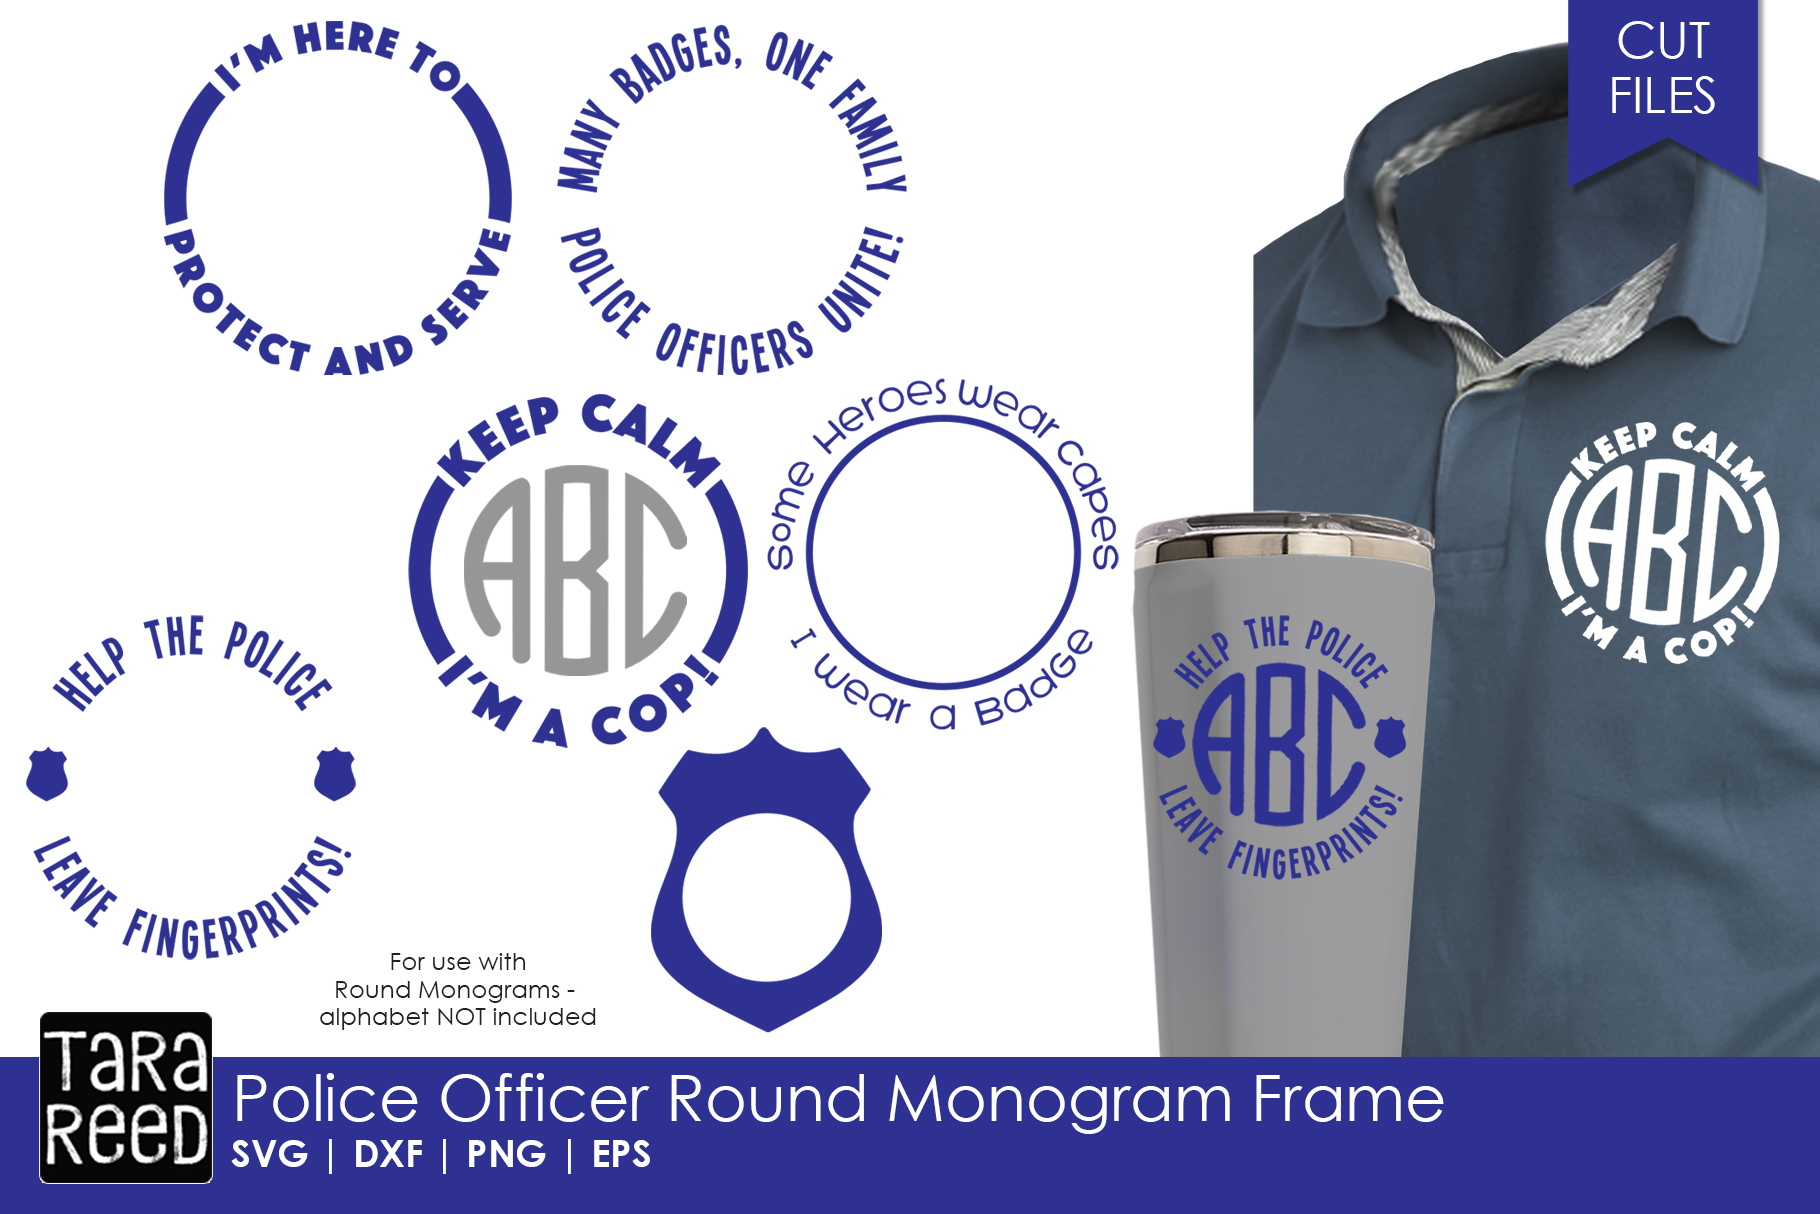 Police Officer Round Monogram Frame - Police SVG & Cut Files example image 1